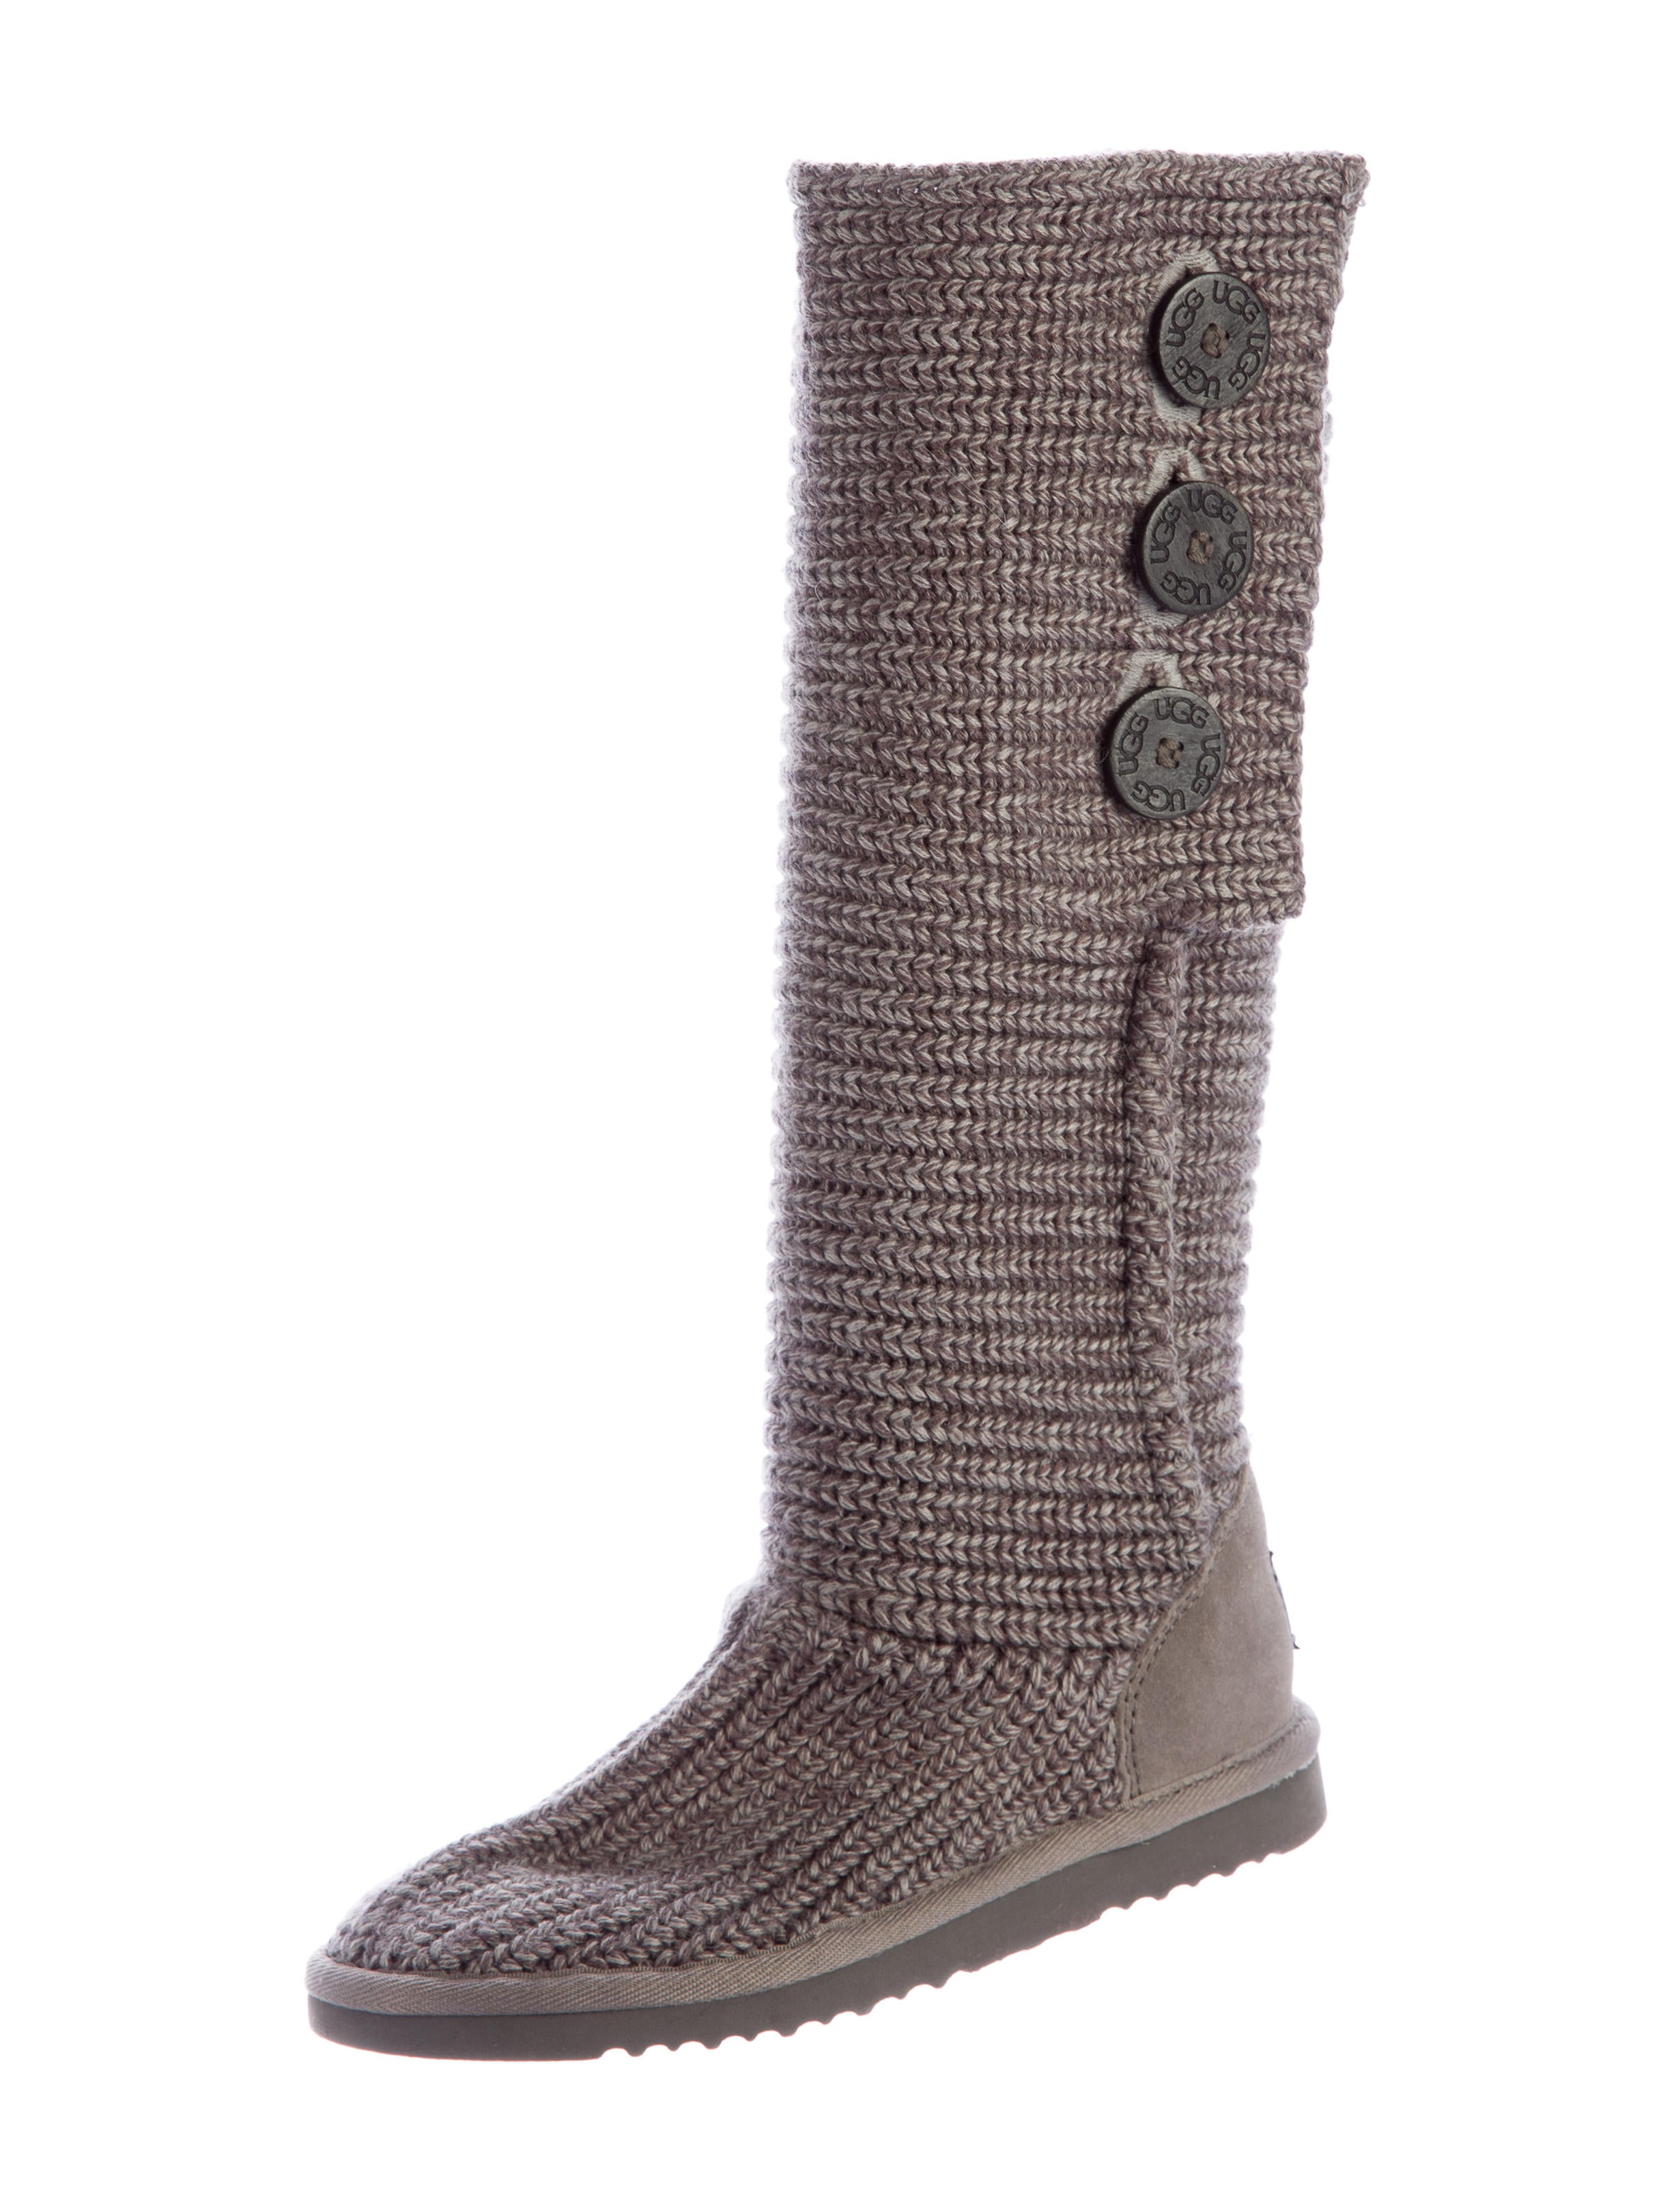 50267504dab Knee High Ugg Boots - cheap watches mgc-gas.com